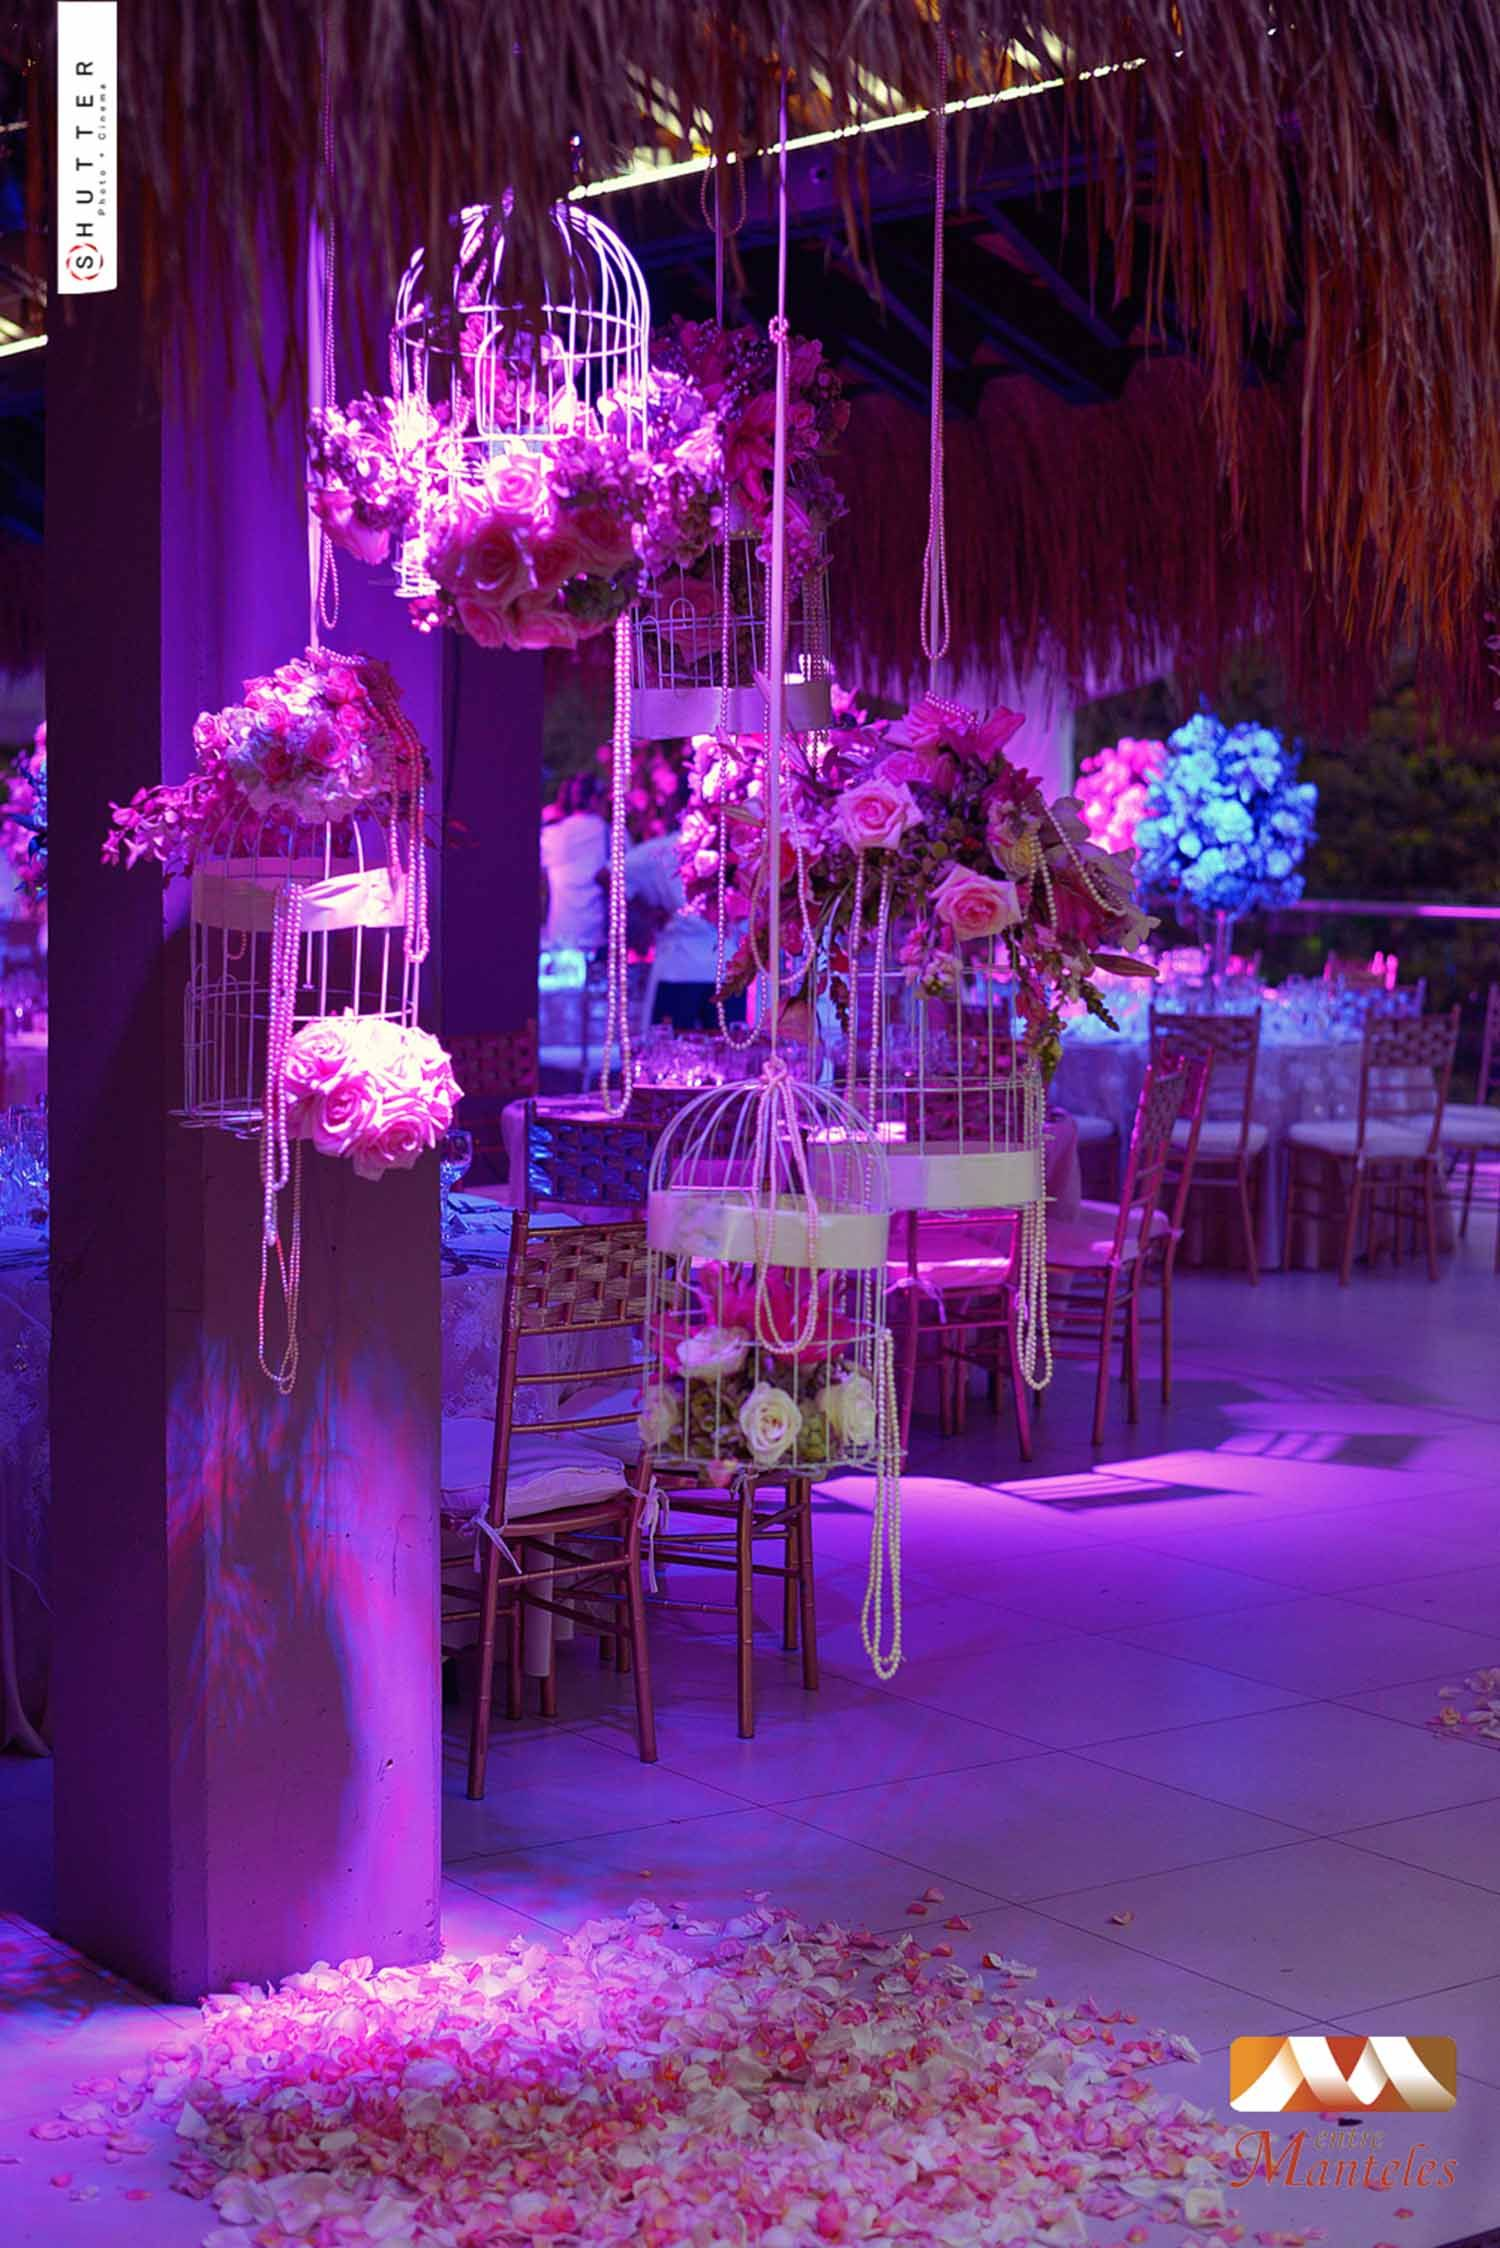 Decoraciones de bodas con jaulas google search - Ideas para decorar fiestas ...